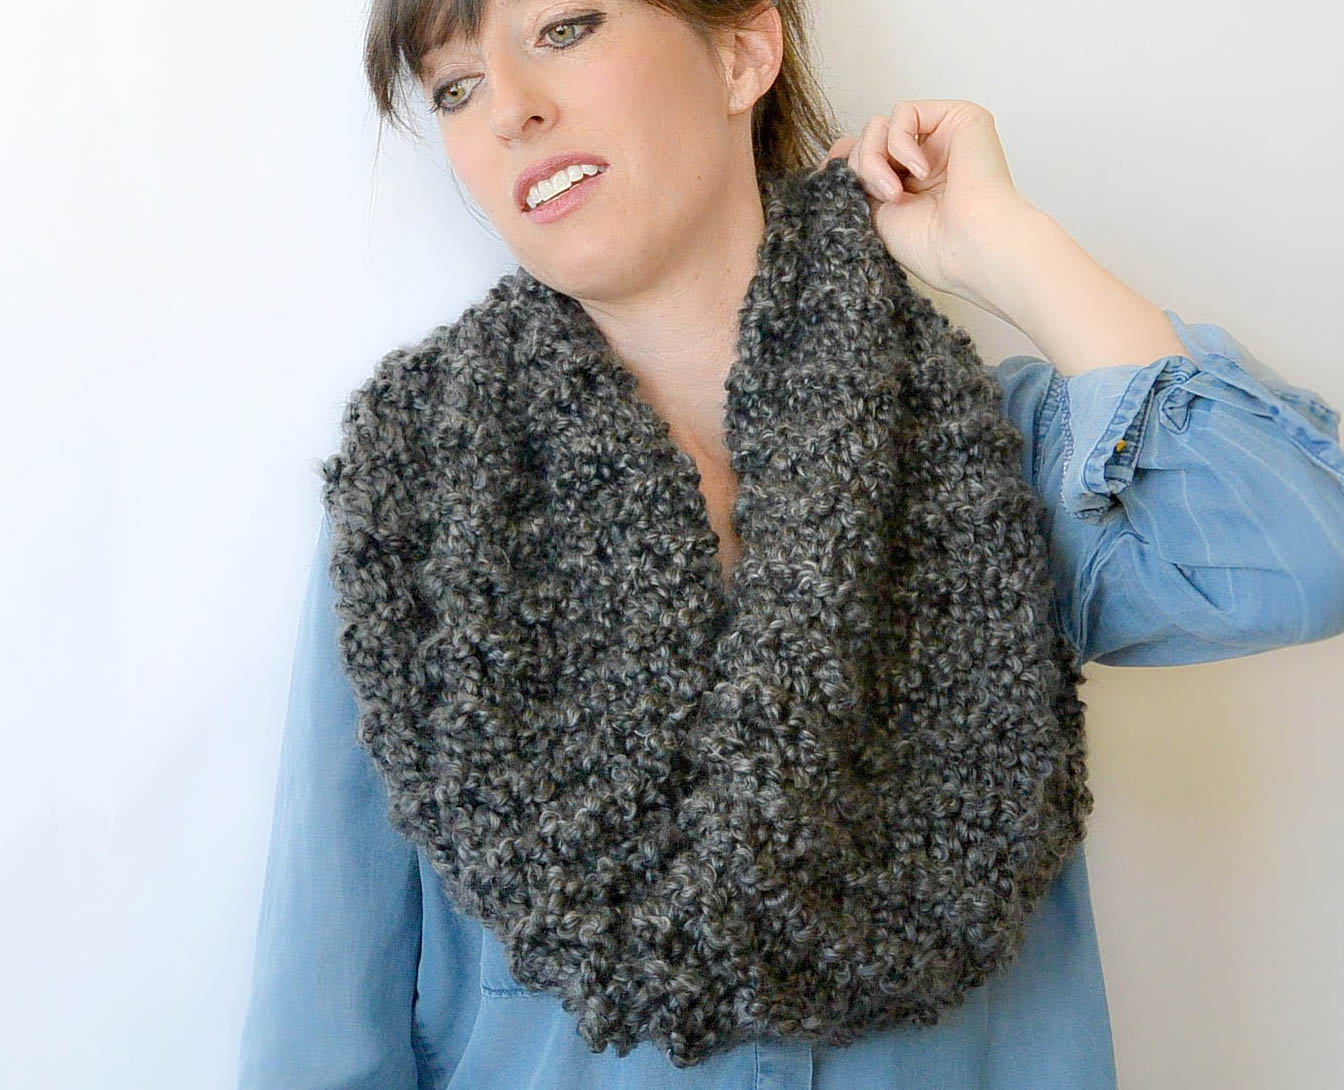 Beginner Knitting Patterns : TALL Eiffel Cowl - Beginner Knitting Pattern   Mama In A ...